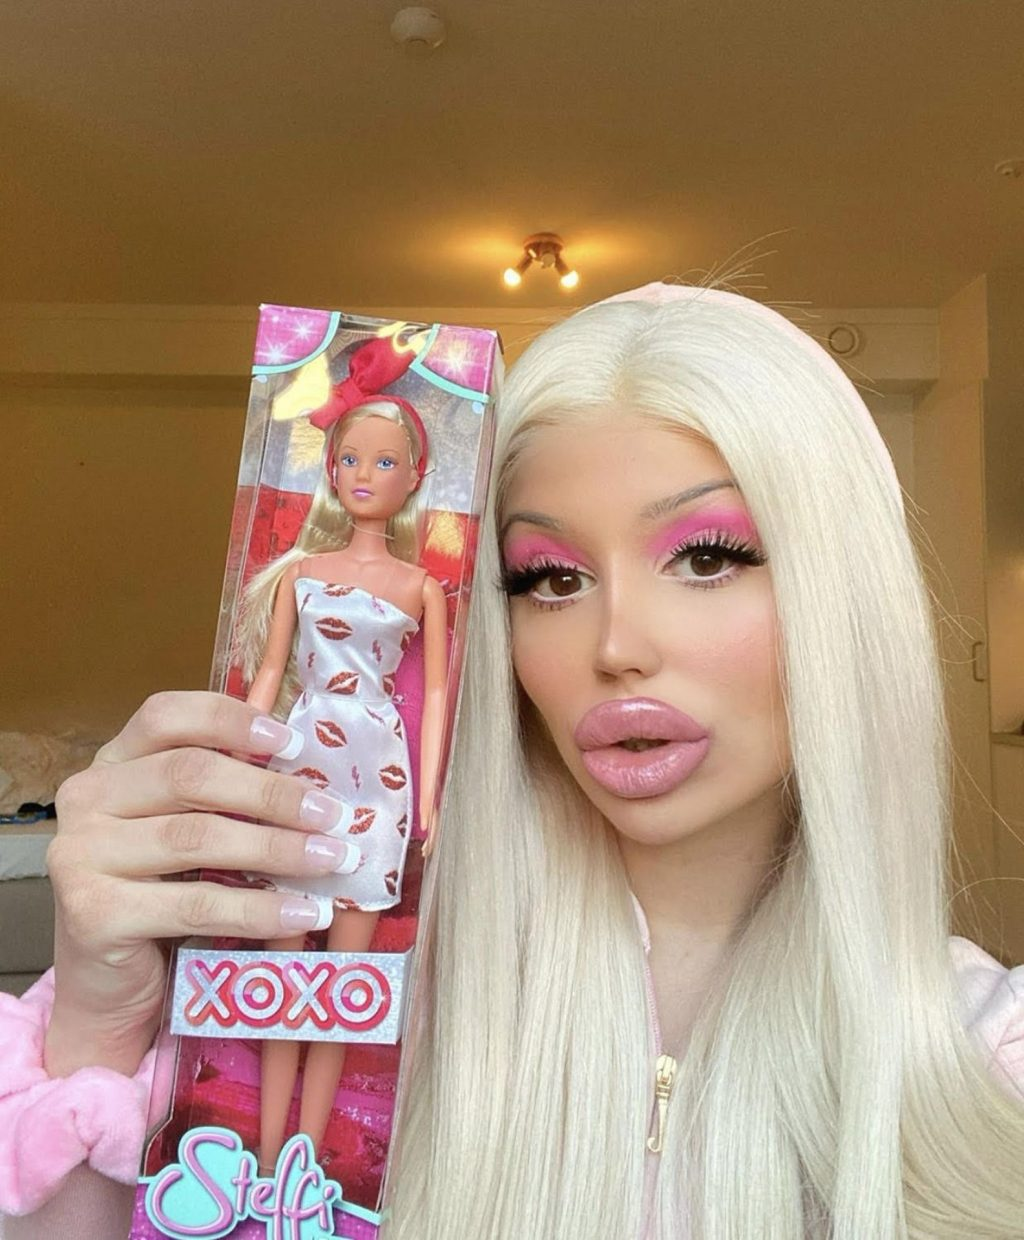 Steffi Mulic Refuses to Let a Pandemic Delay Her Becoming a Real-Life Bratz Doll (12 Photos)